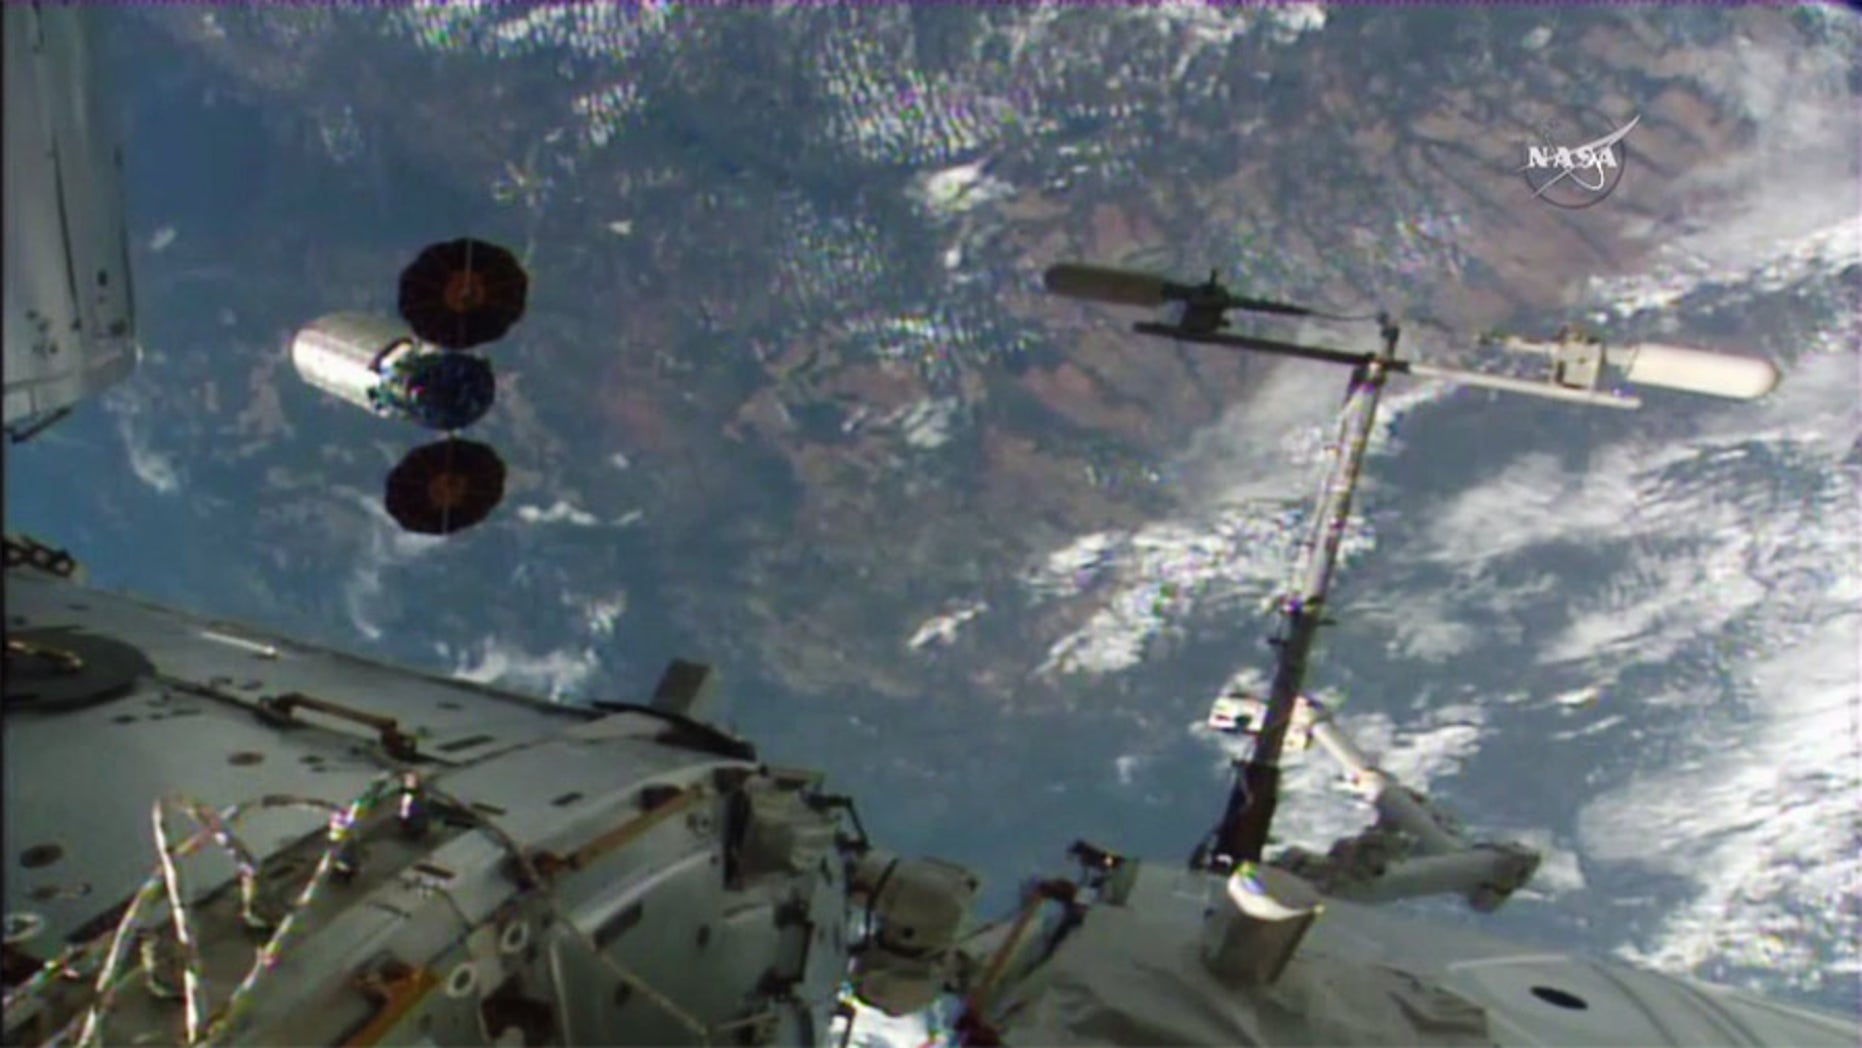 The Orbital ATK Cygnus spacecraft S.S. Rick Husband departs the International Space Station on June 14, 2016 to end its delivery mission. NASA will light the largest fire ever set in space inside the spacecraft in an expe